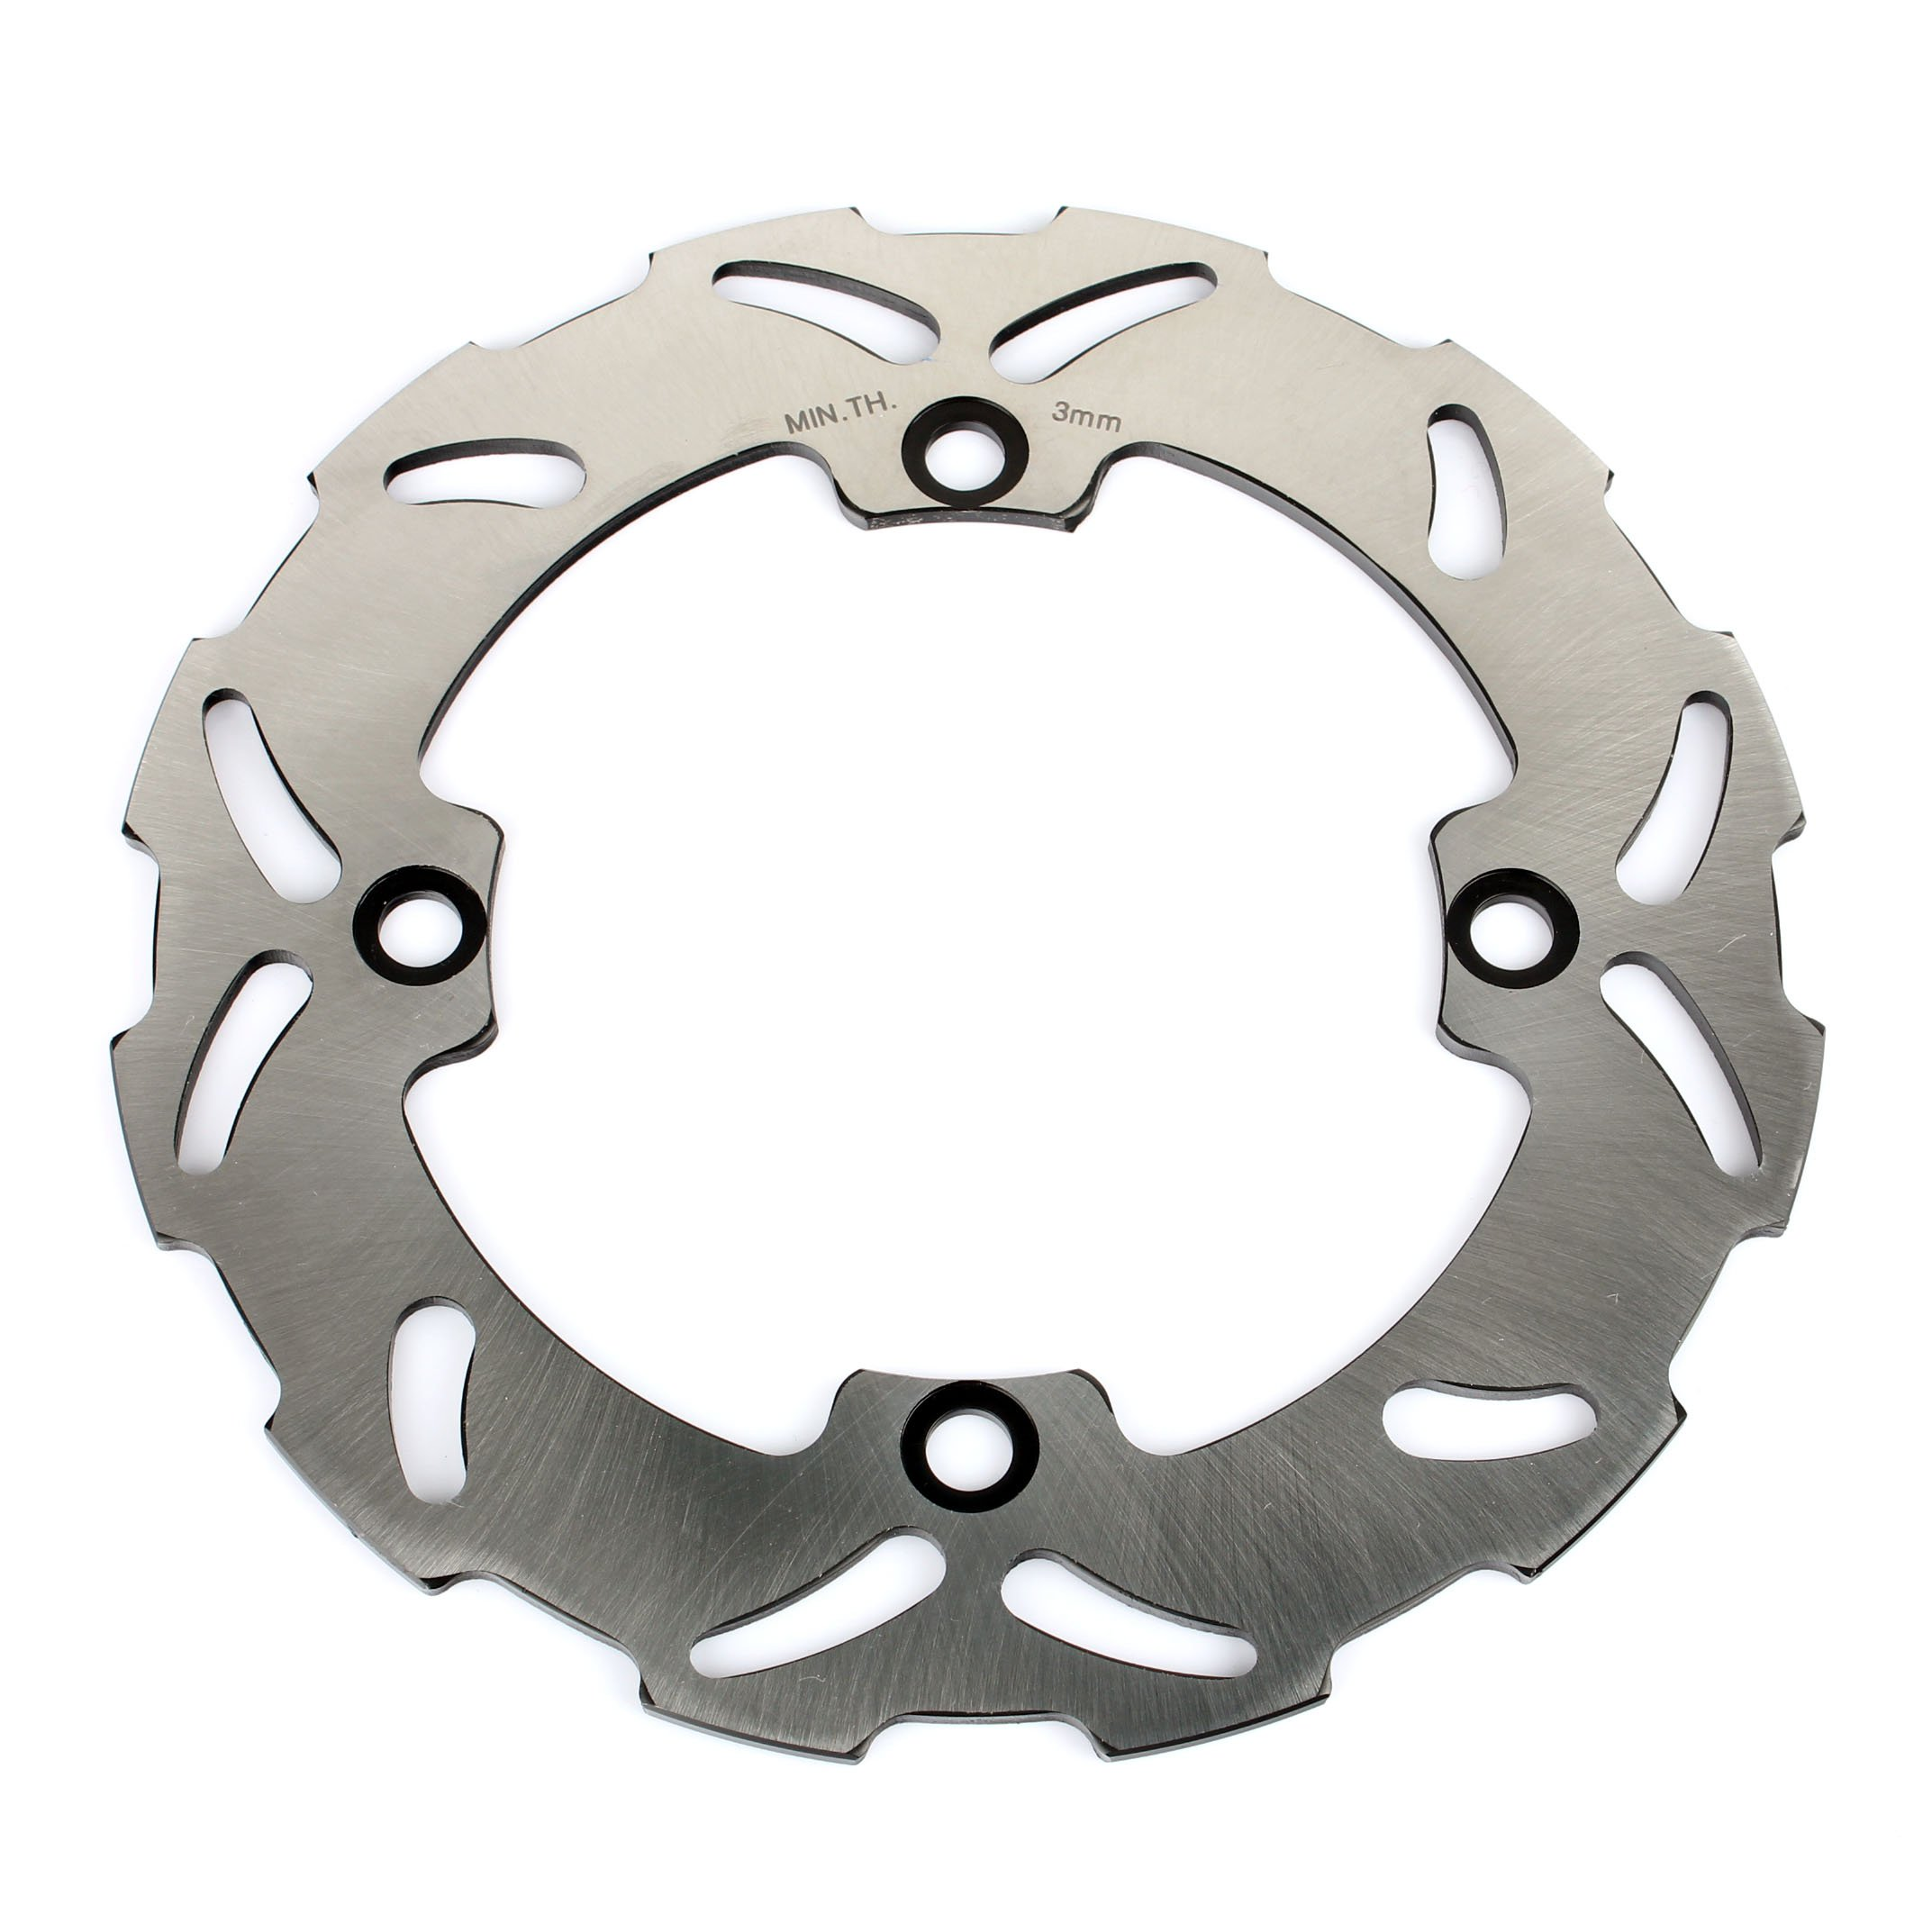 TARAZON 220mm Rear Brake Disc Rotor for Honda CR125 CR250 1989-1996 CR500 1989-2001